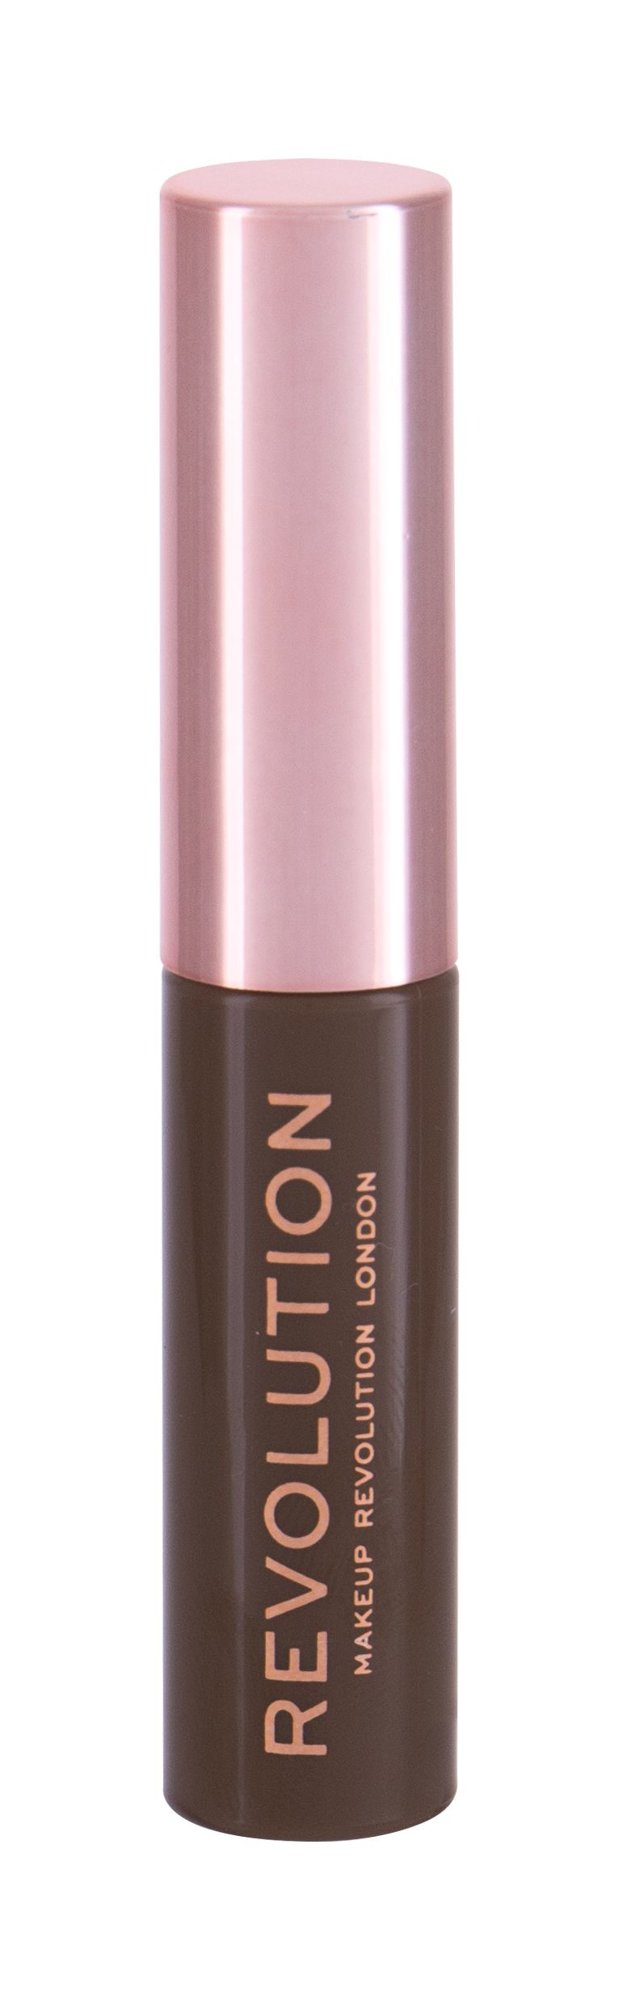 Makeup Revolution London Brow Gel  (Gel a pomáda na obočí, W, 6 ml)